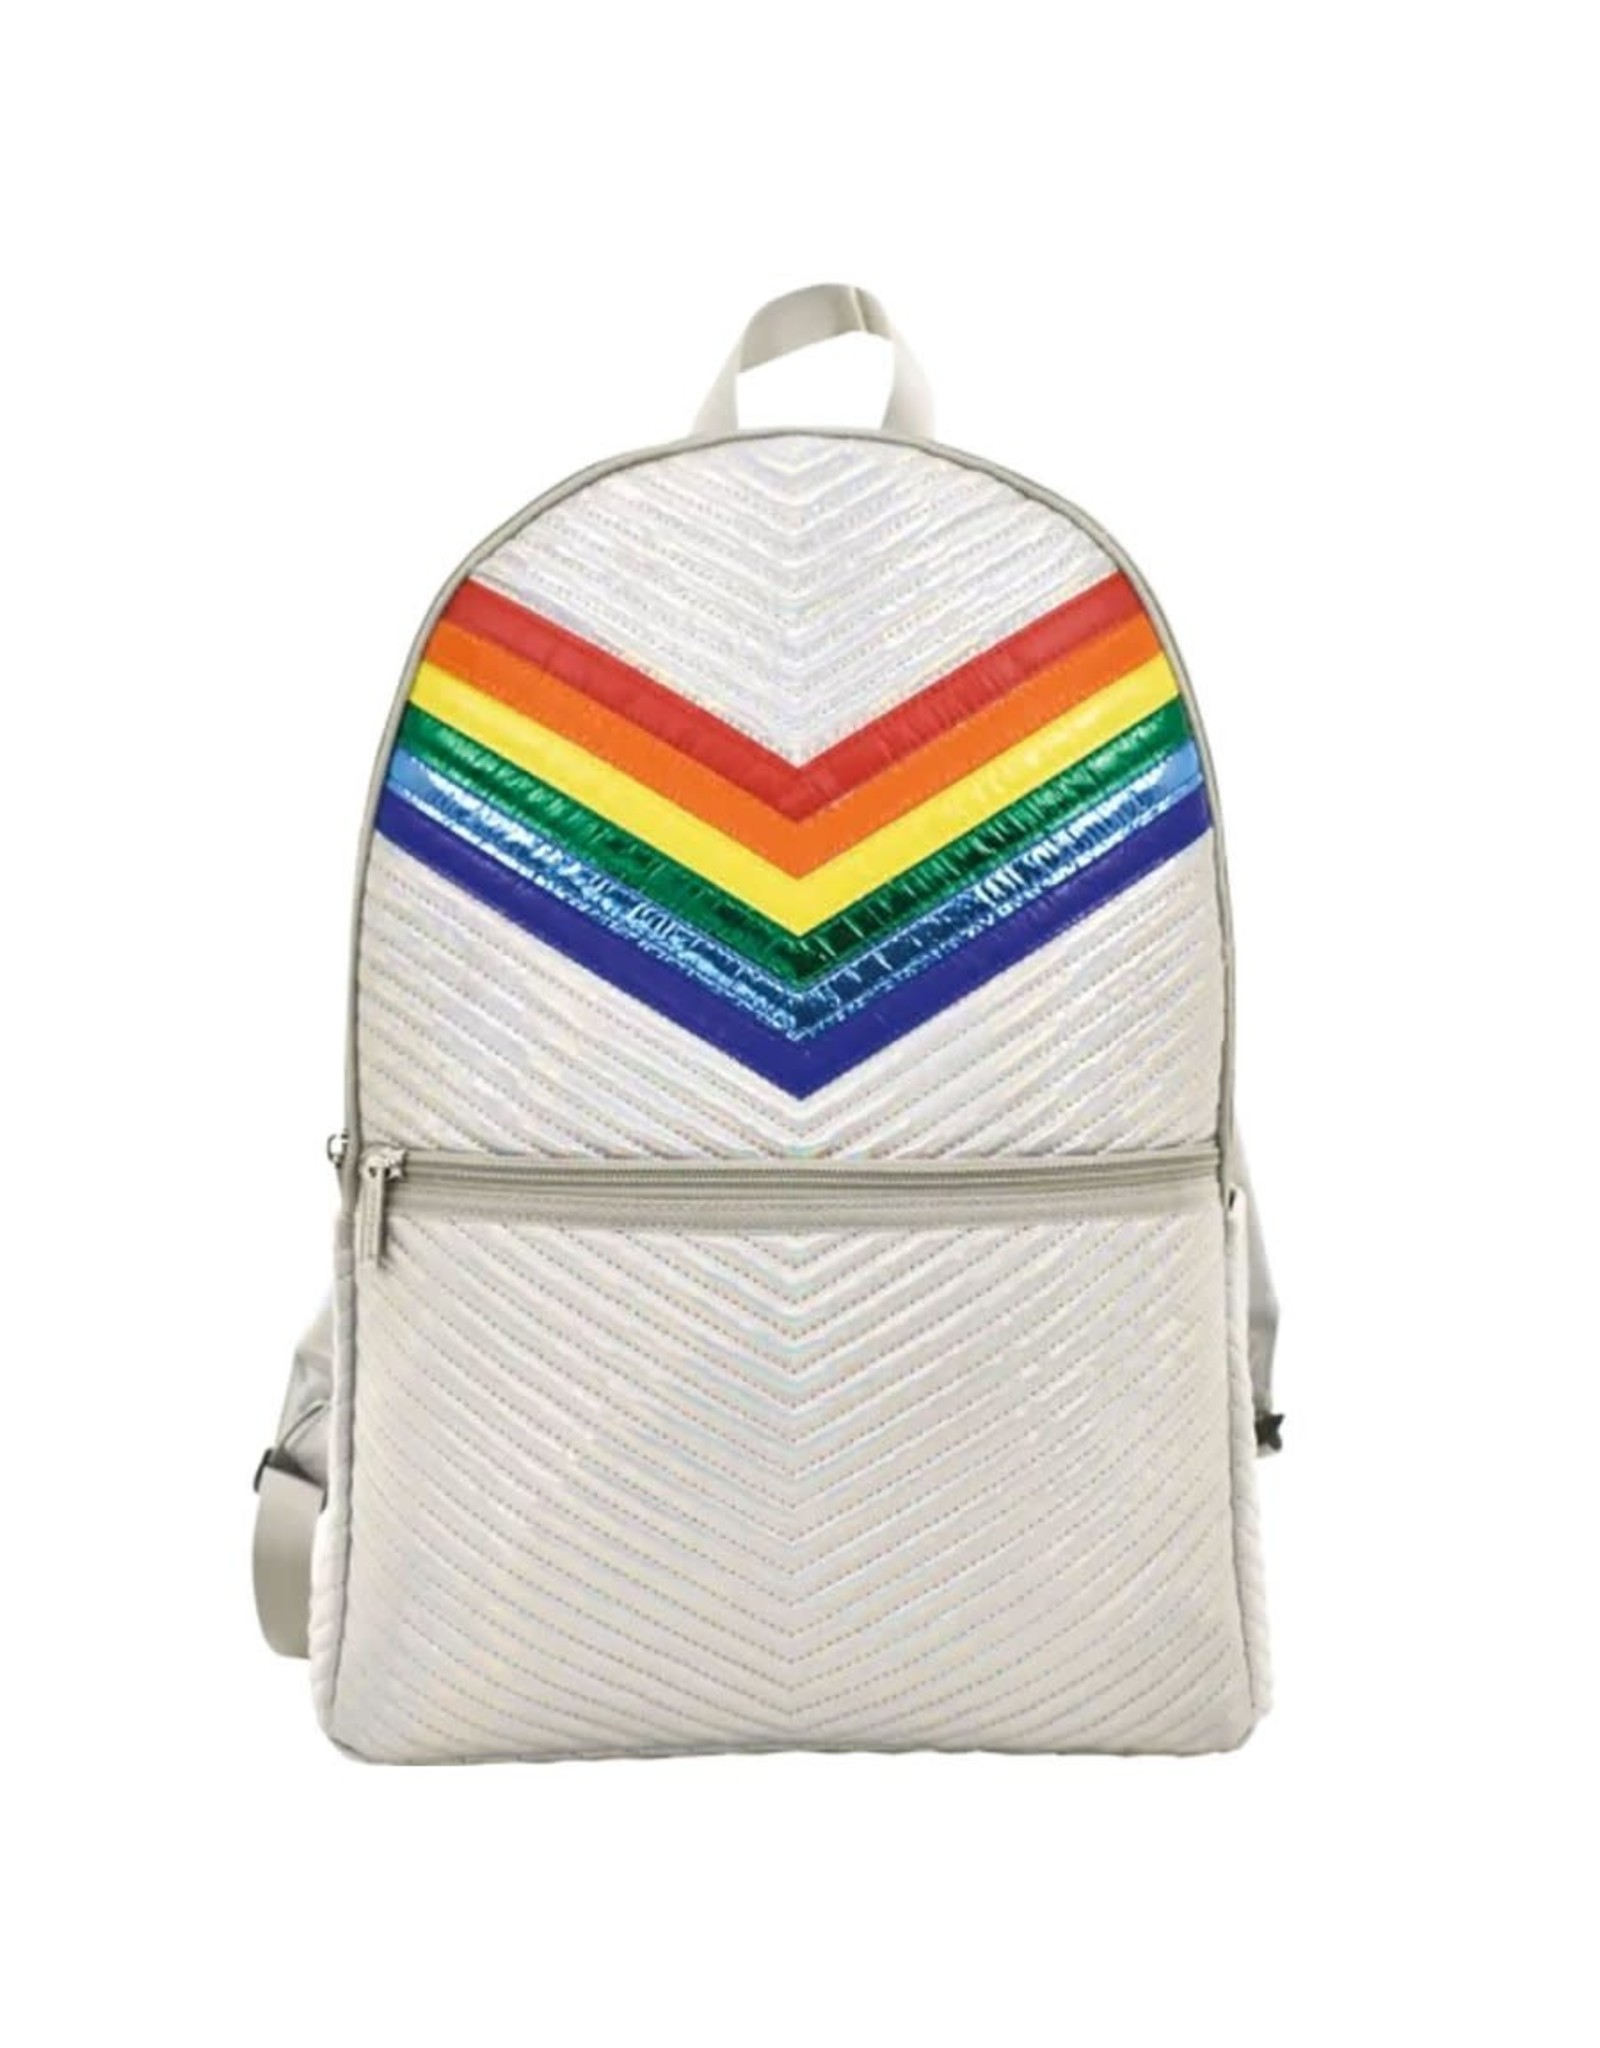 Iscream Backpack, Silver Chevron